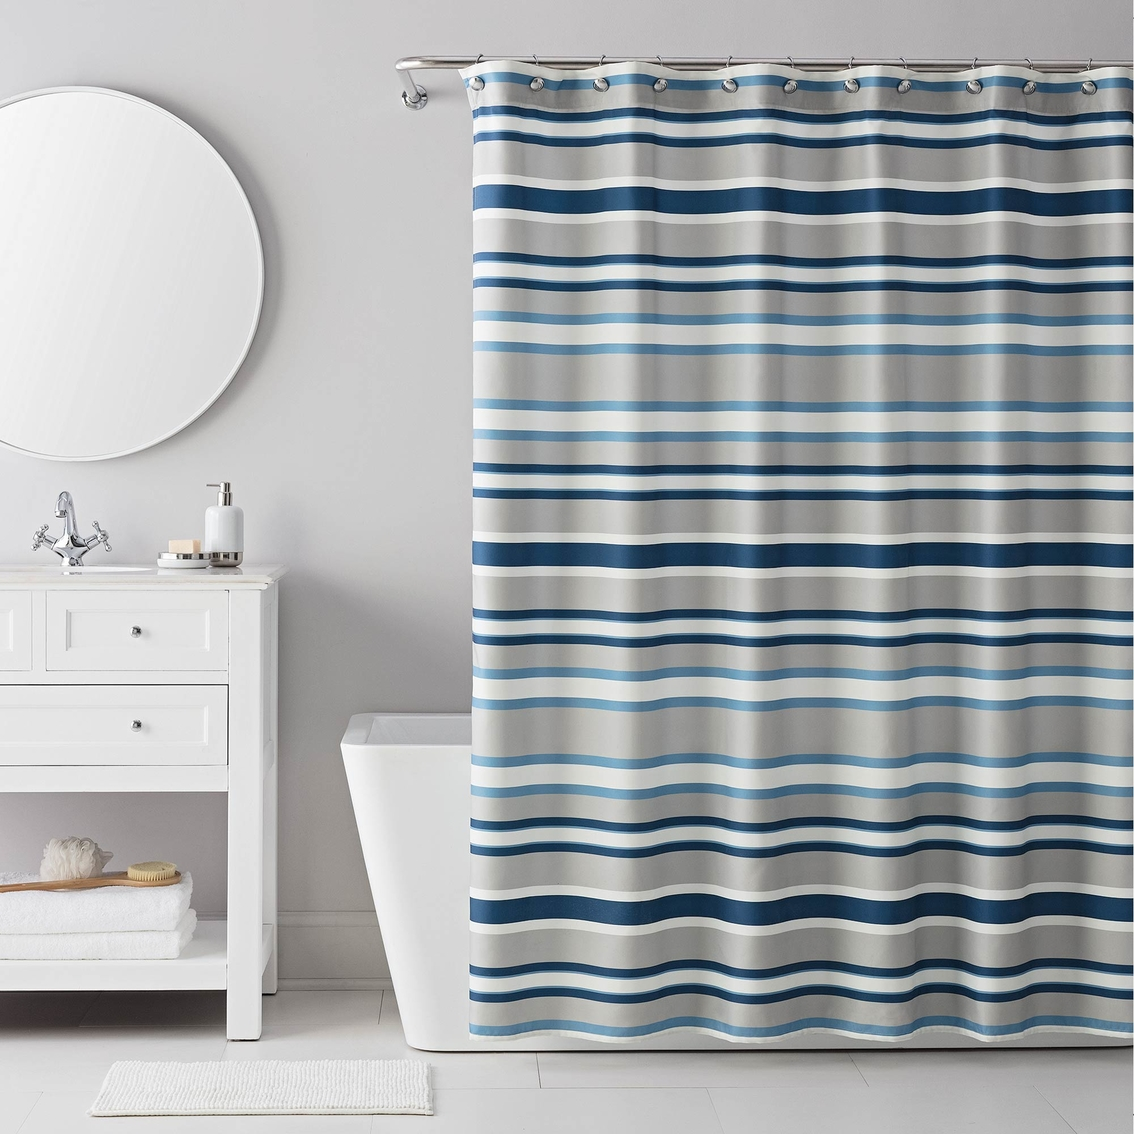 Izod Bradley Stripes Shower Curtain And Rings Set Shower